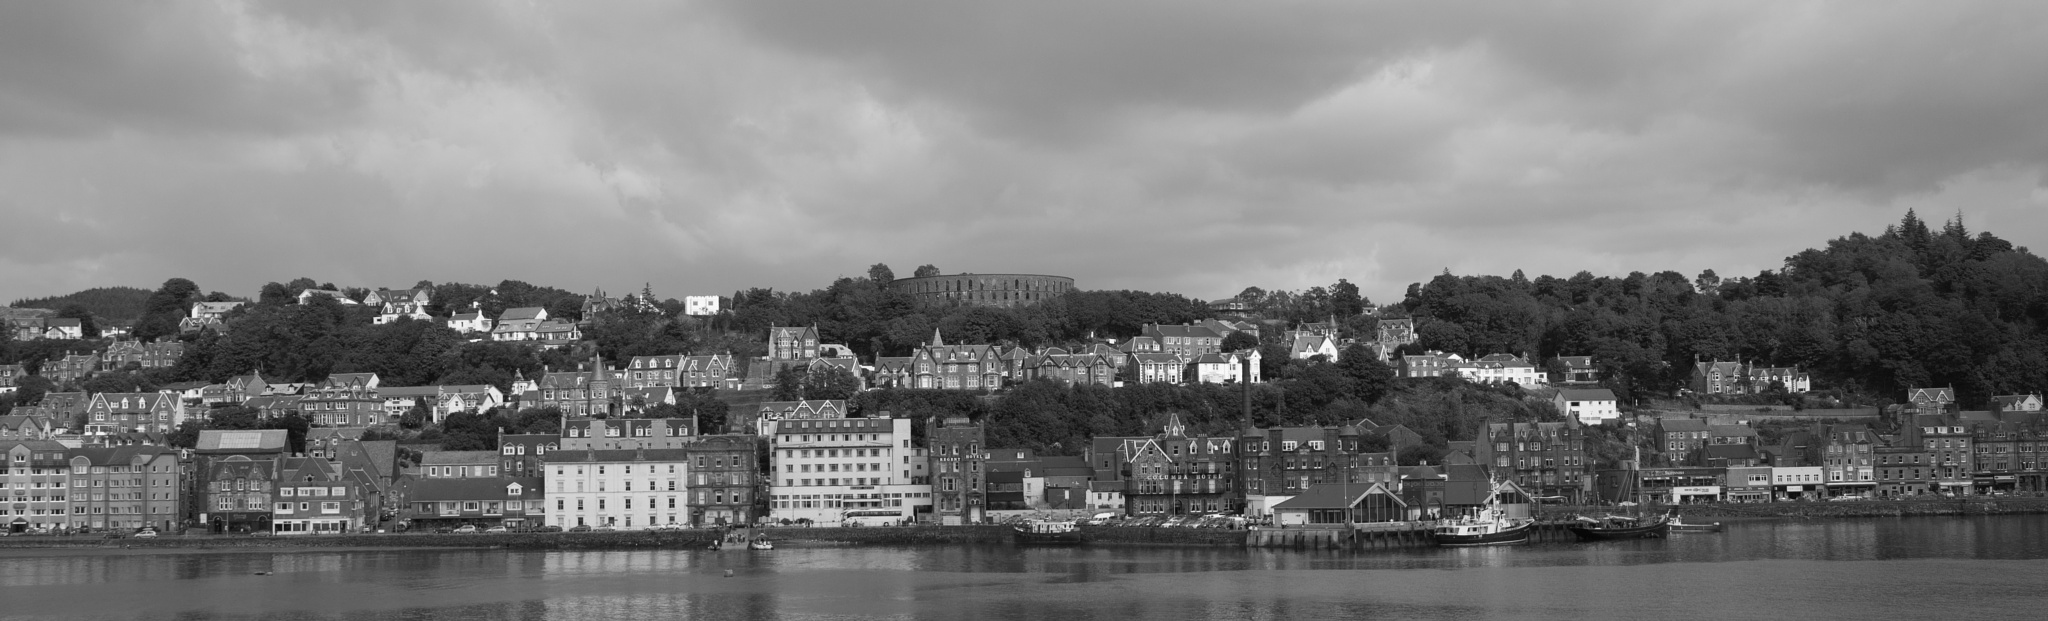 Oban by Simon Welch